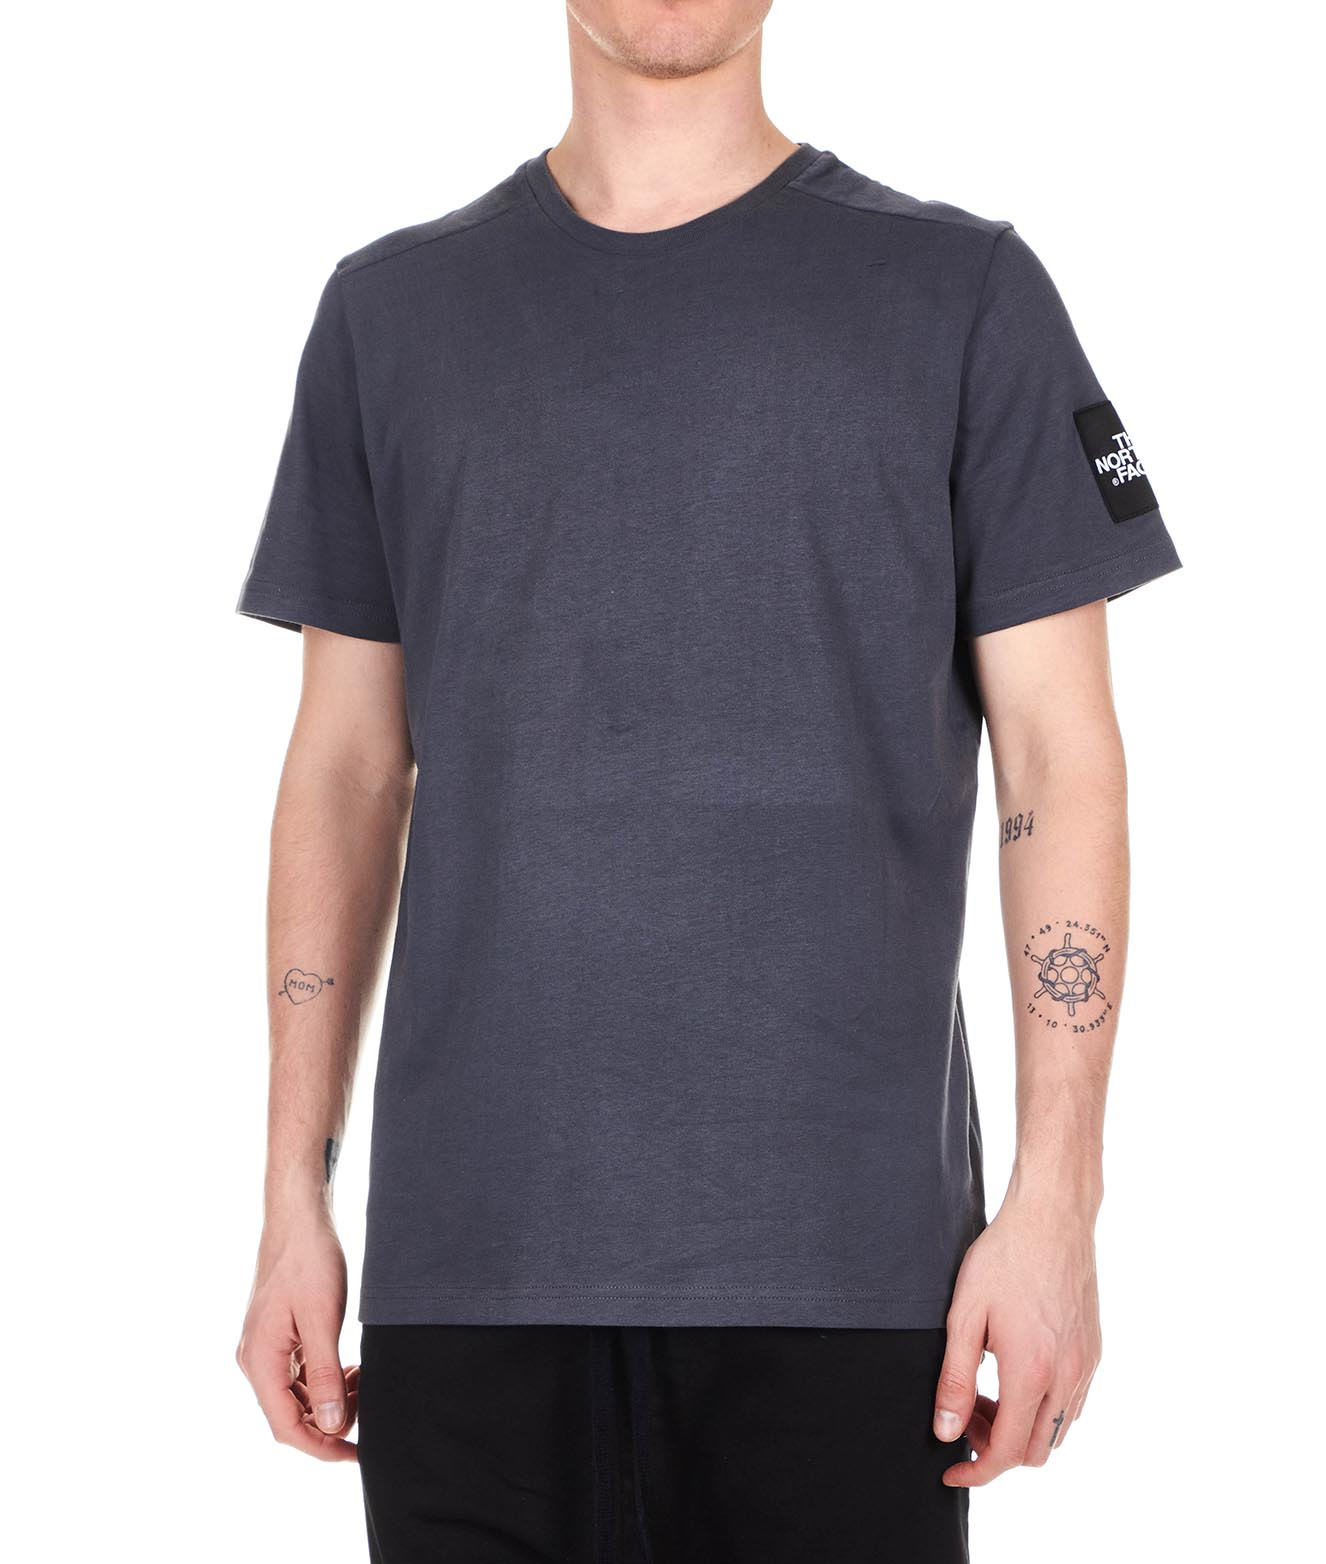 The-North-Face-Men-039-s-Clothing-T-Shirts-amp-Polos-T93BP70C5-Petrol